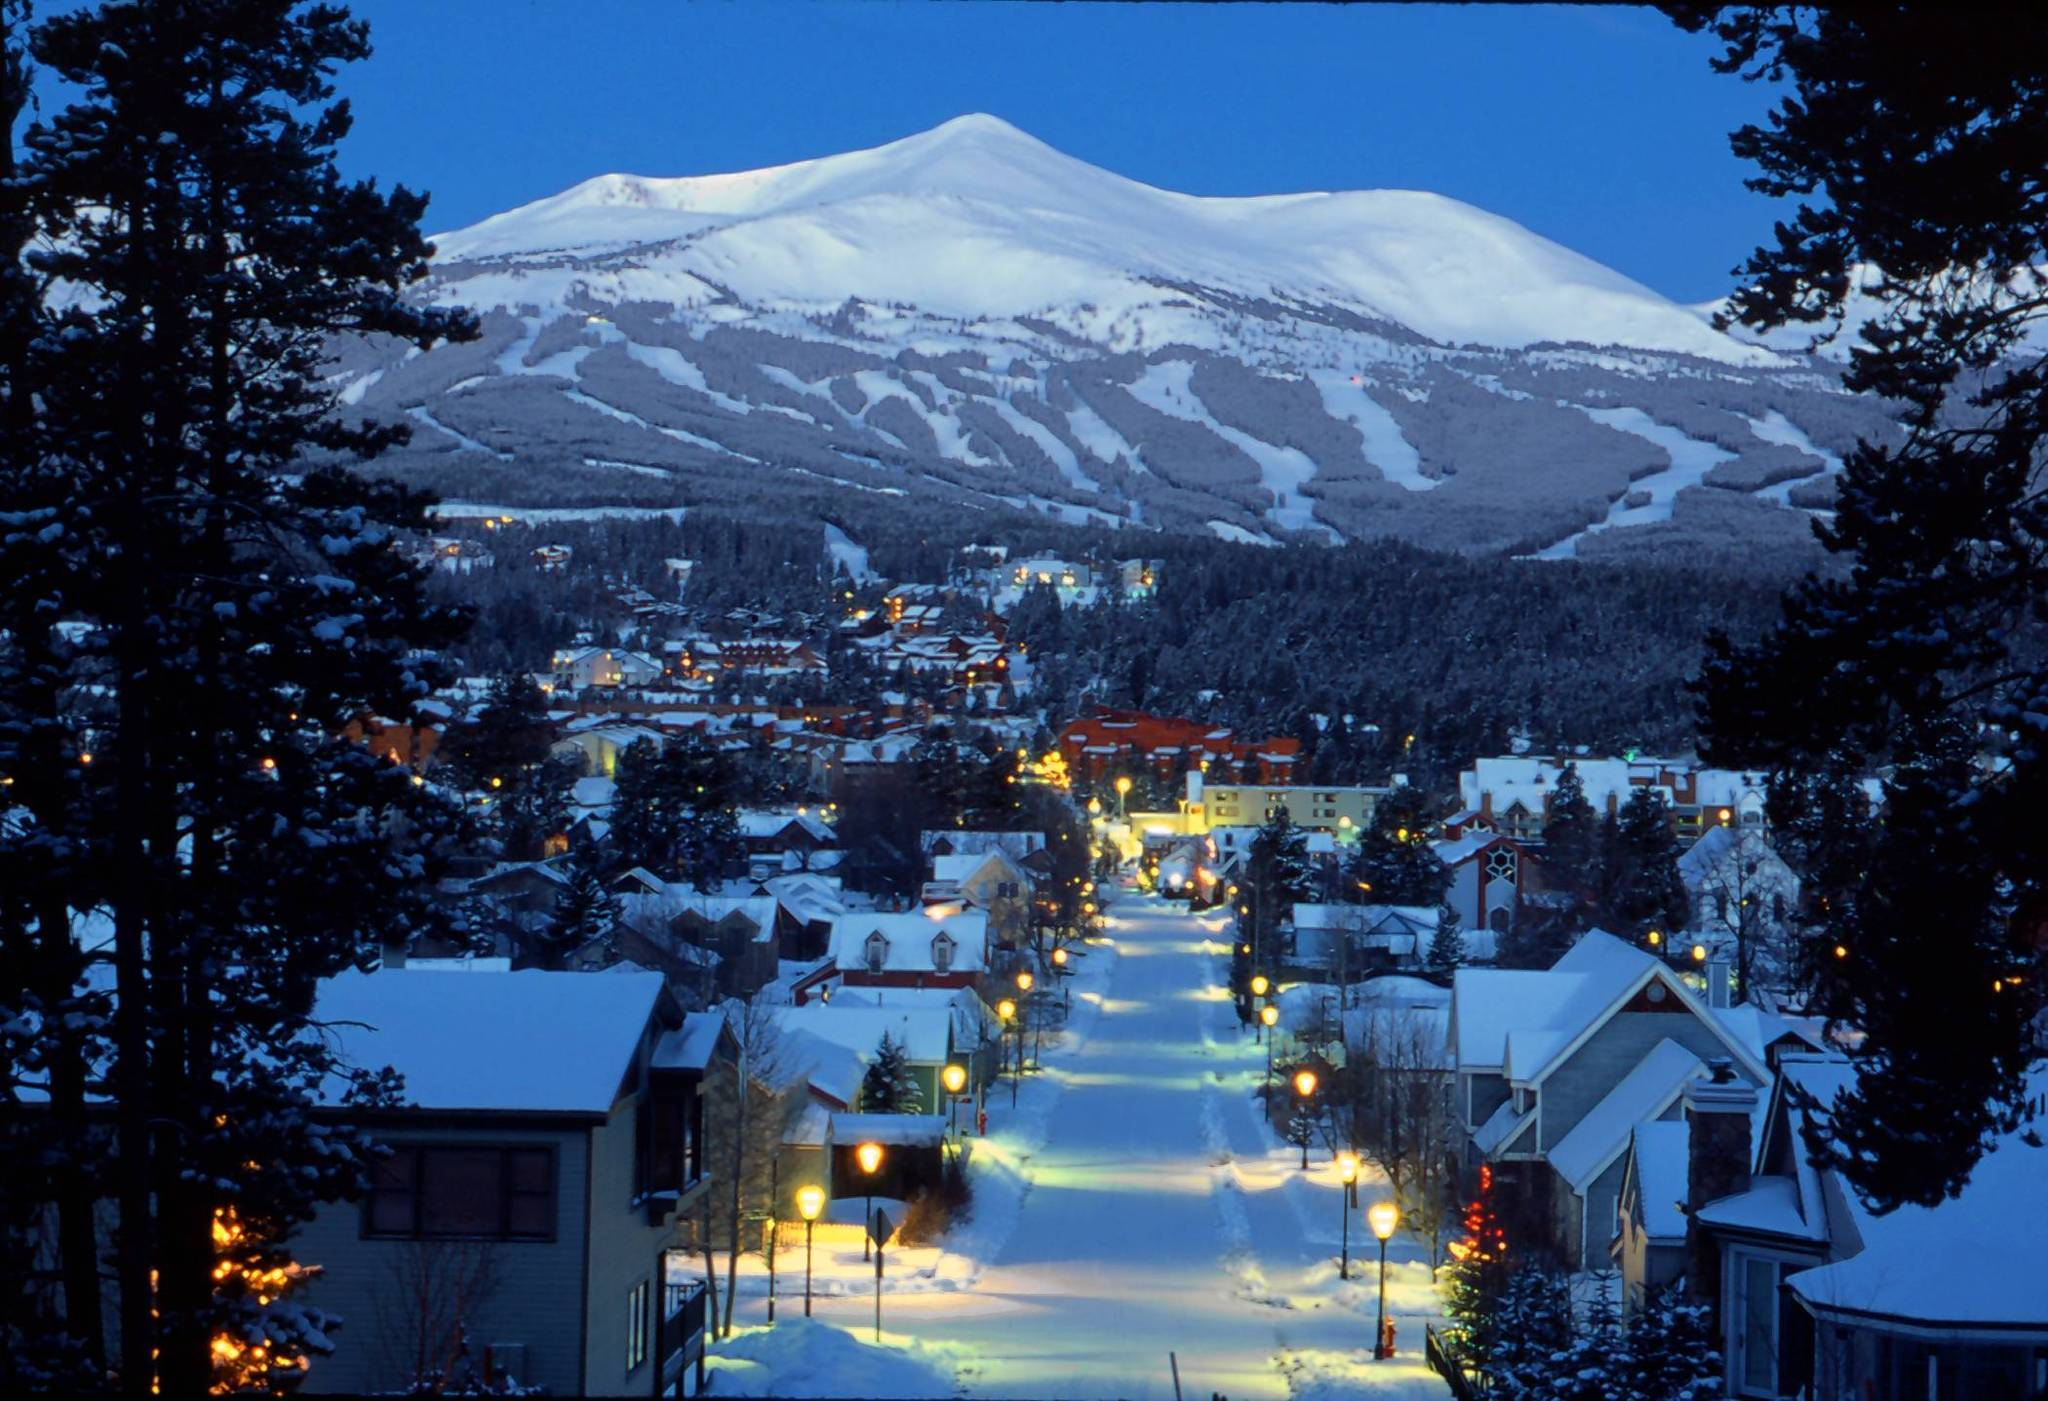 Downtown Breckenridge, Colo., is seen in this Dec. 12, 2002, file photo with the Breckenridge Ski resort in the background.